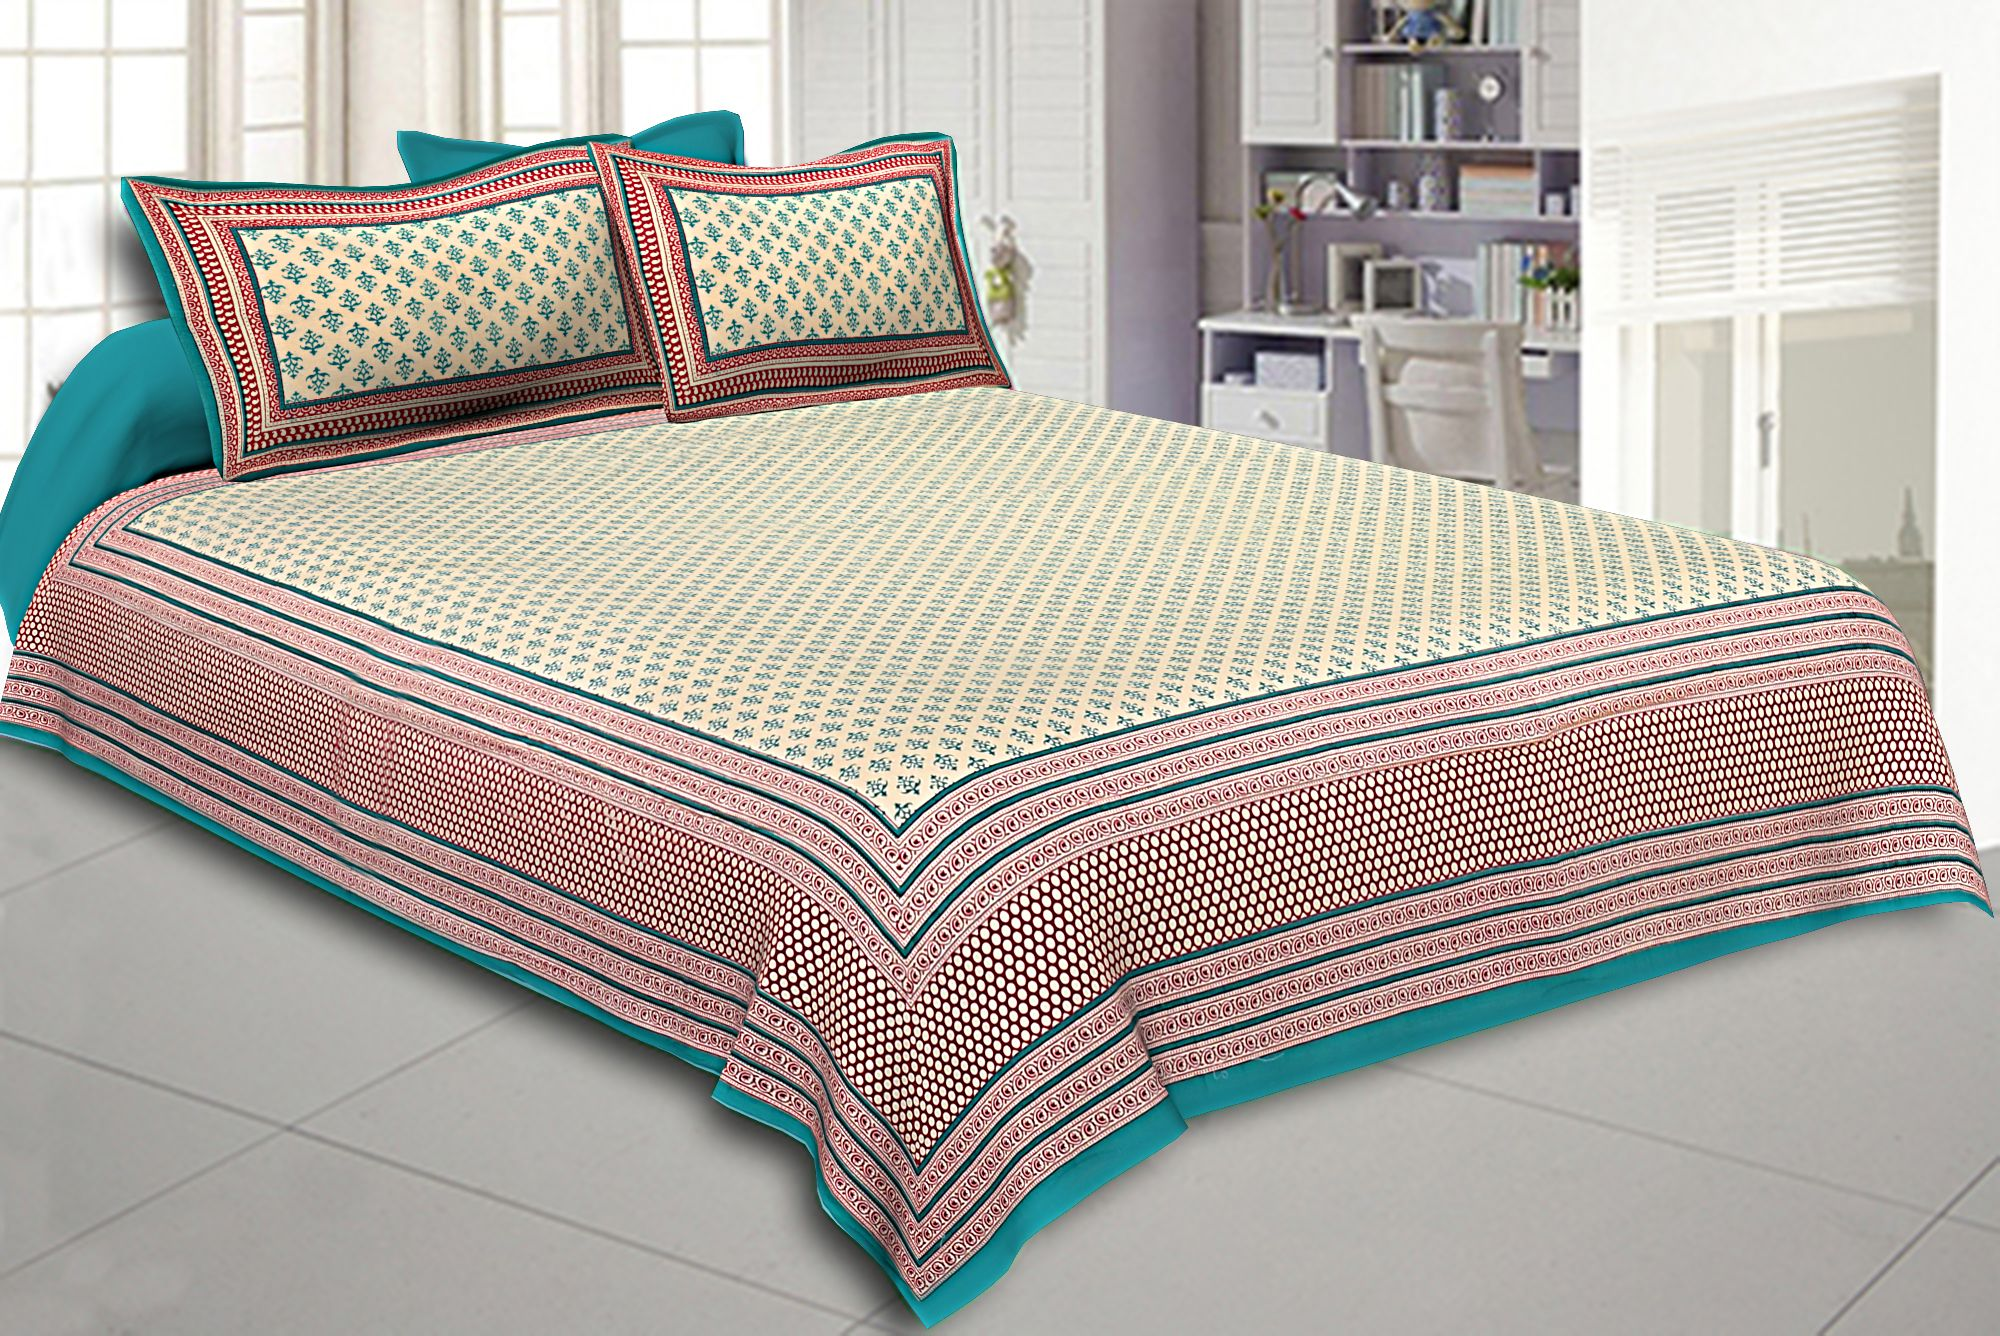 King Size Double Bedsheet Block Print Sea Green Border  Fine Cotton Design